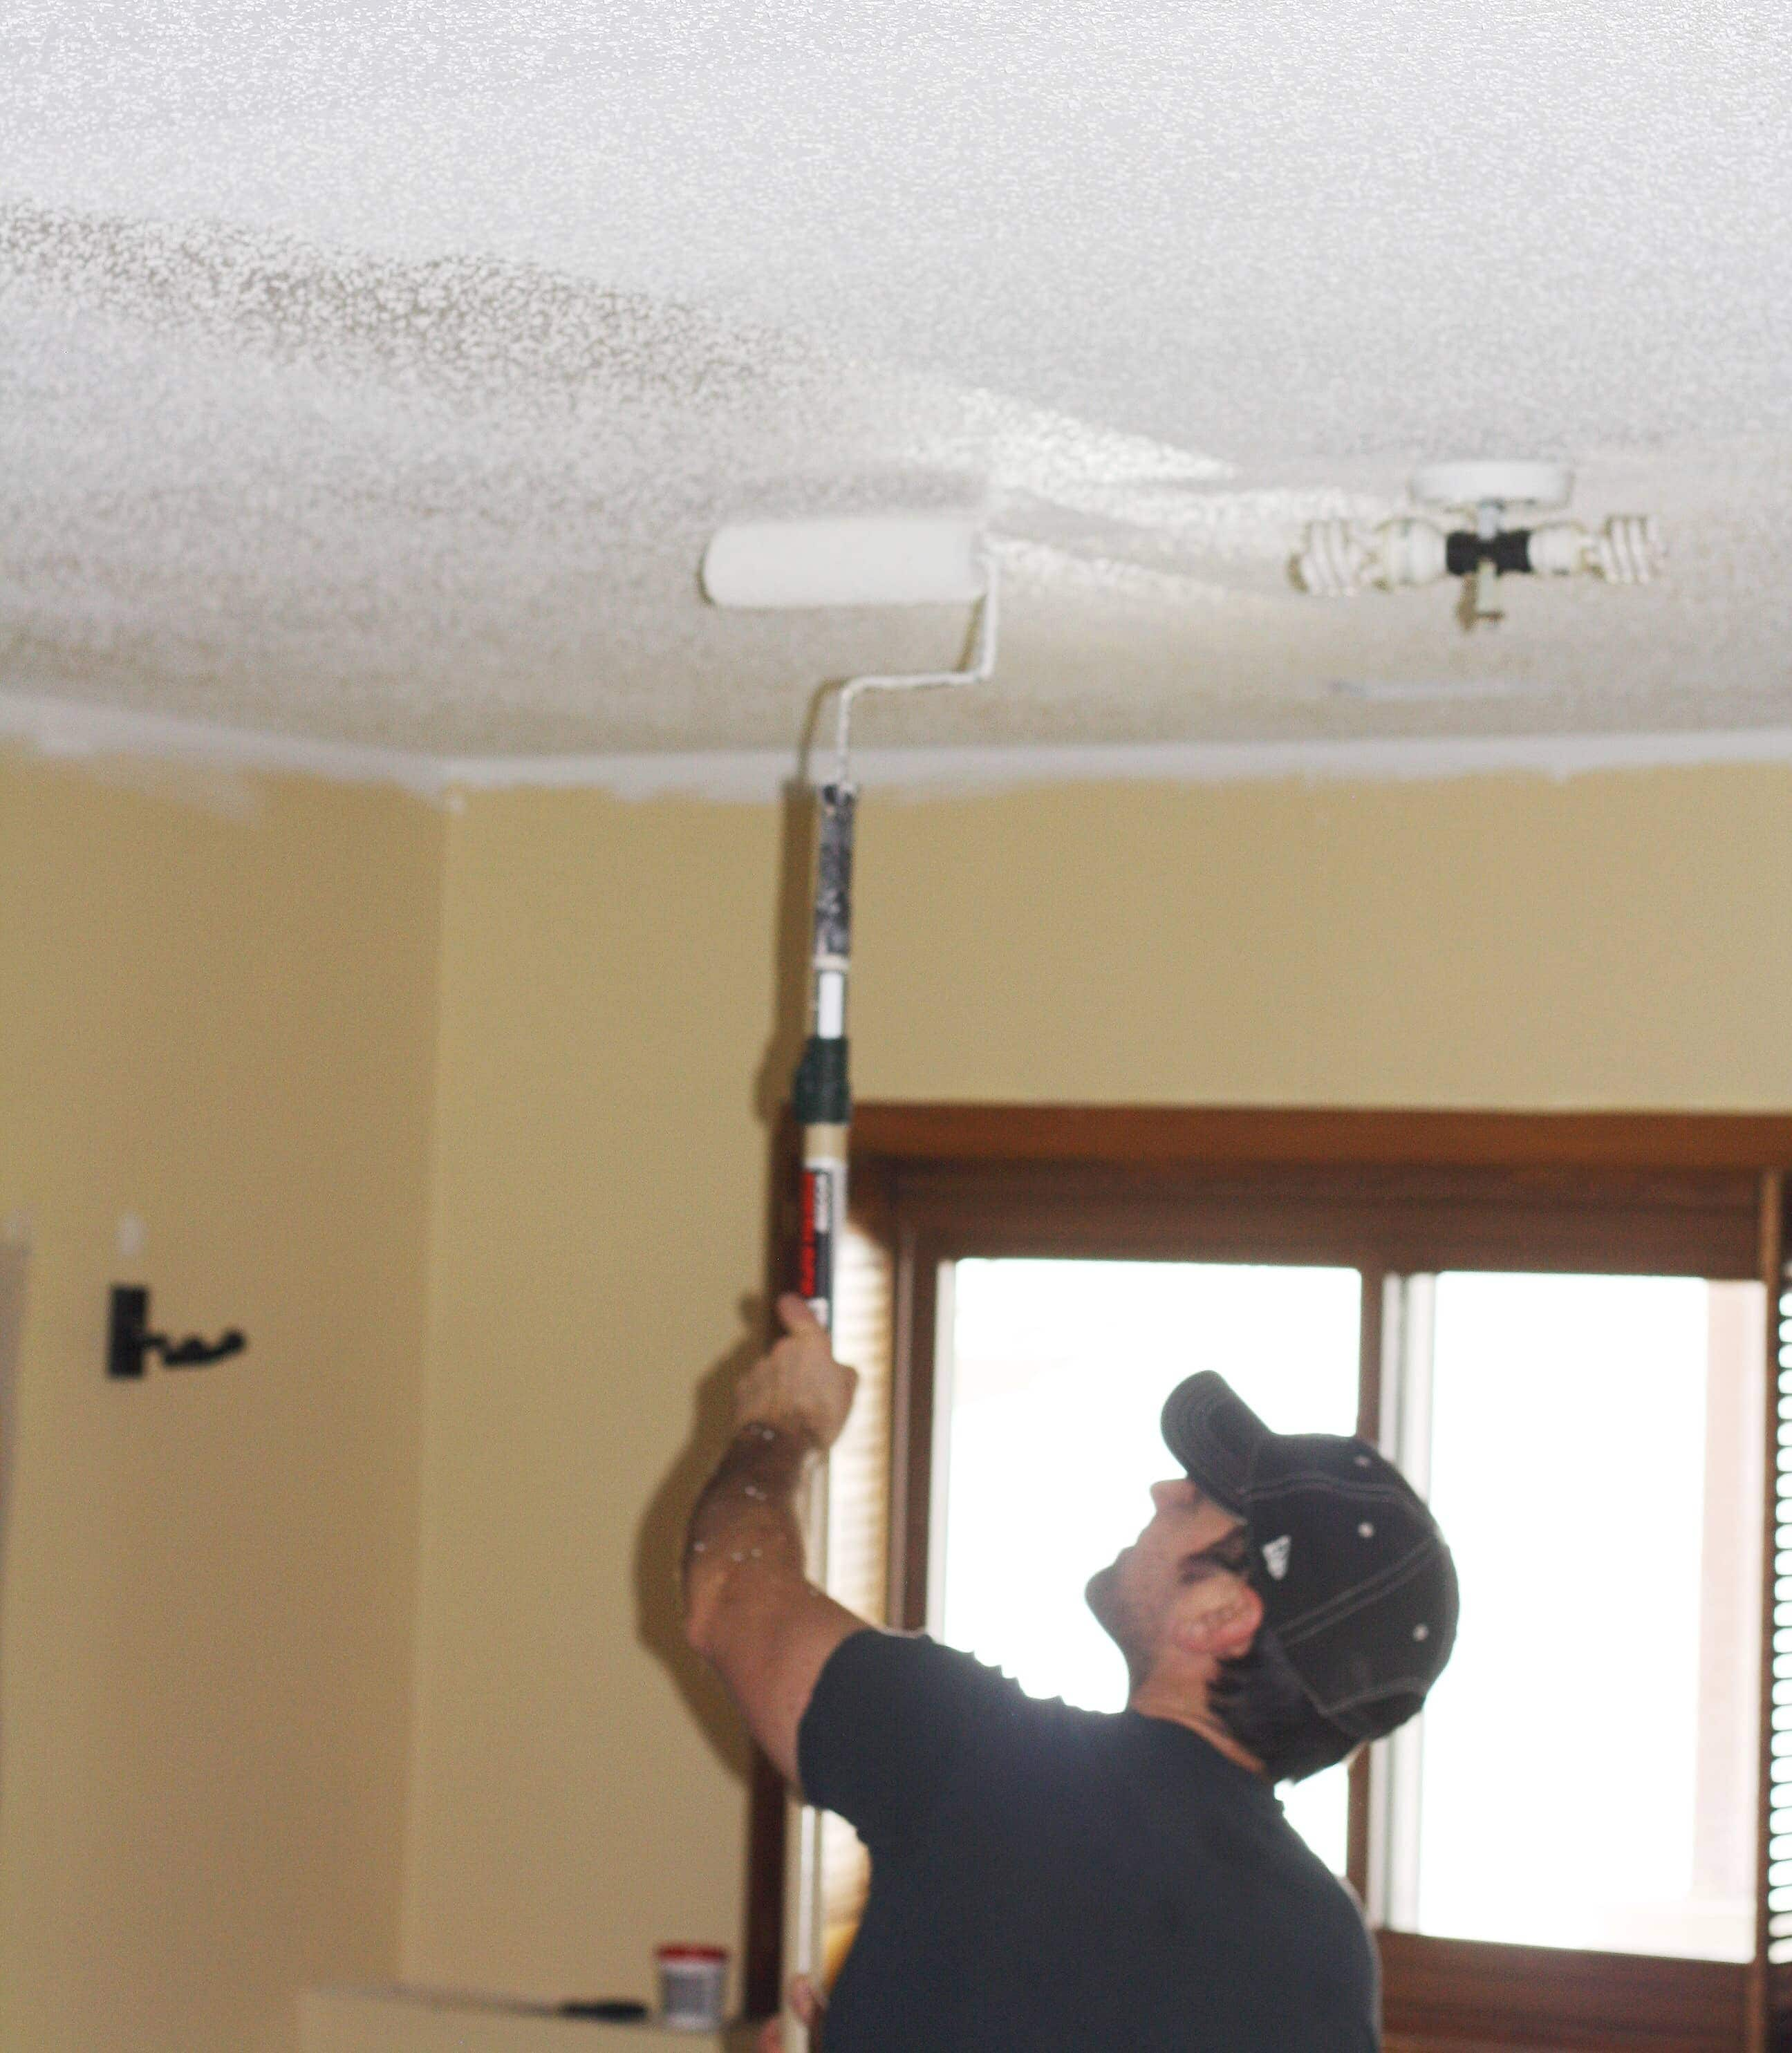 How To Paint Popcorn Ceiling Refashionablylate Com